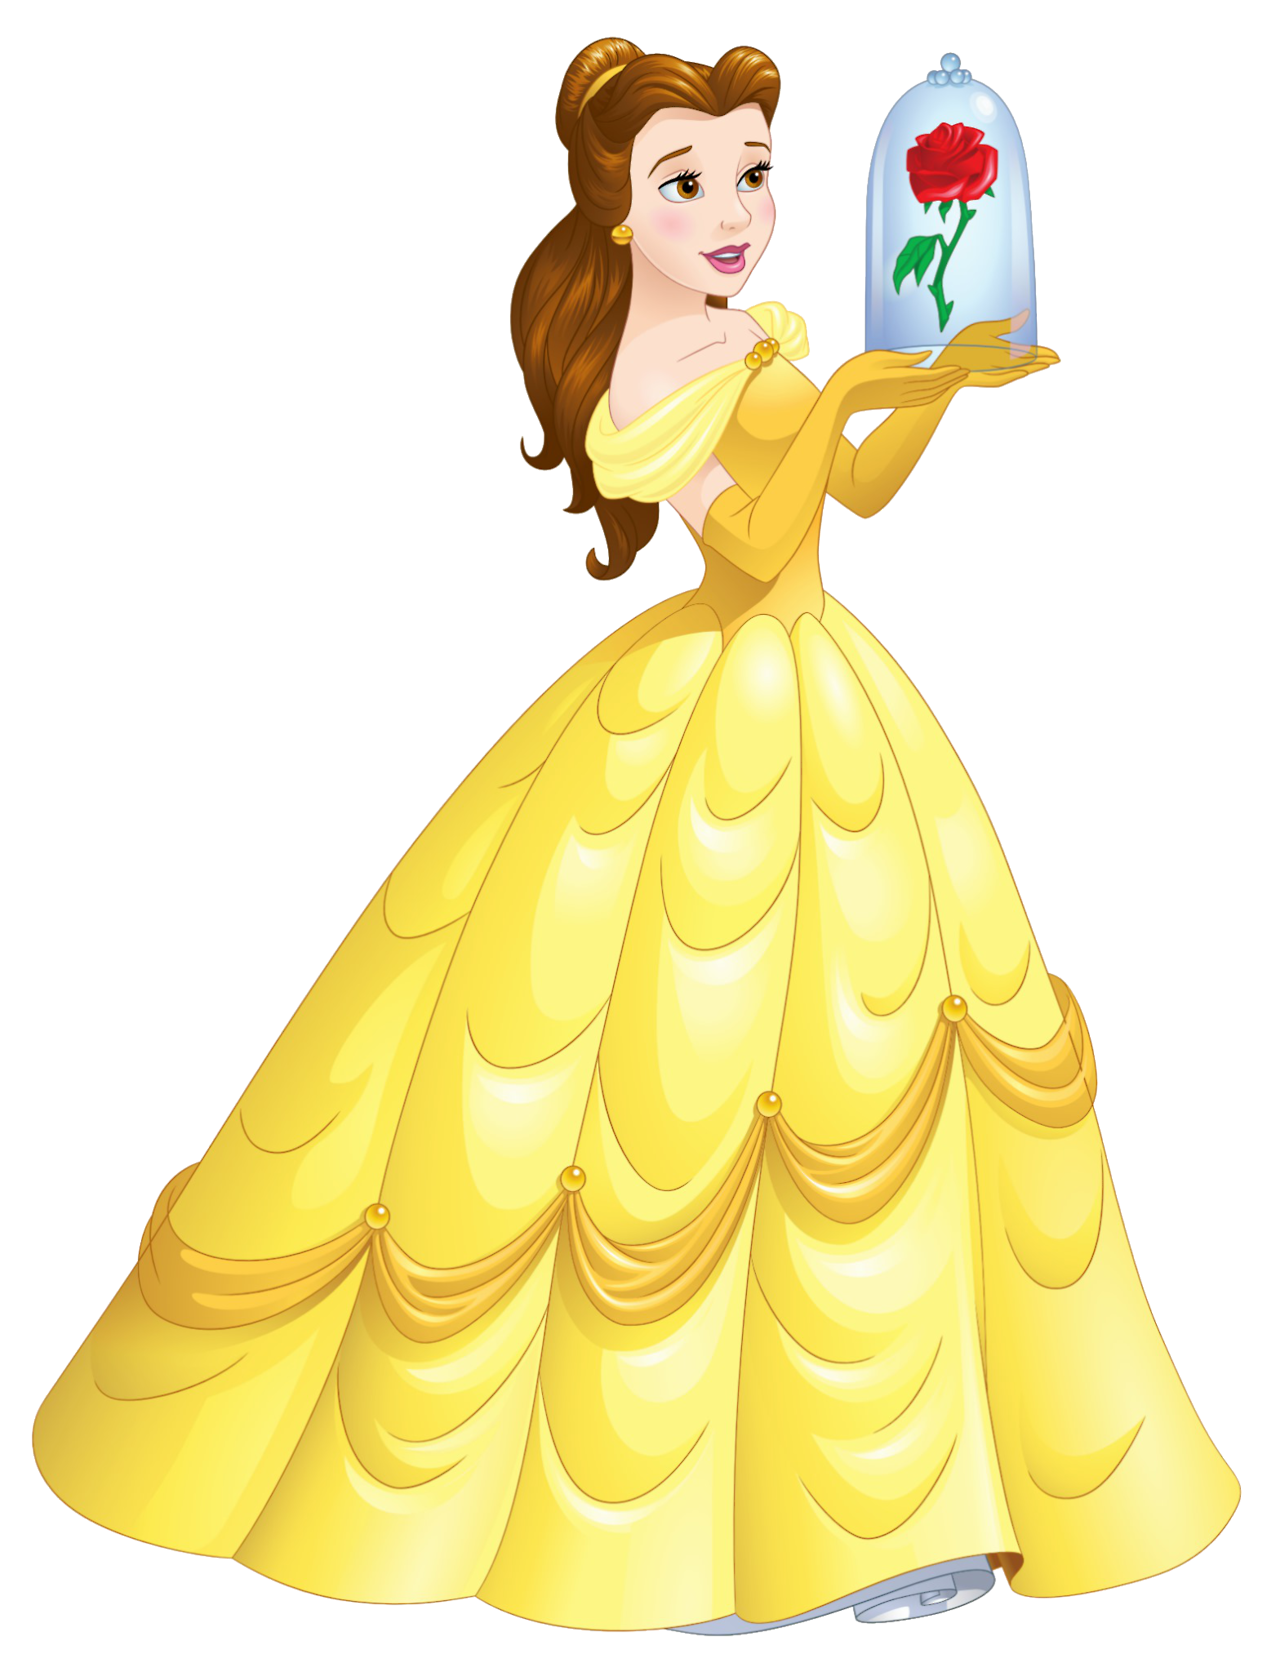 freeuse stock Belle transparent yellow dress. Artwork png en hd